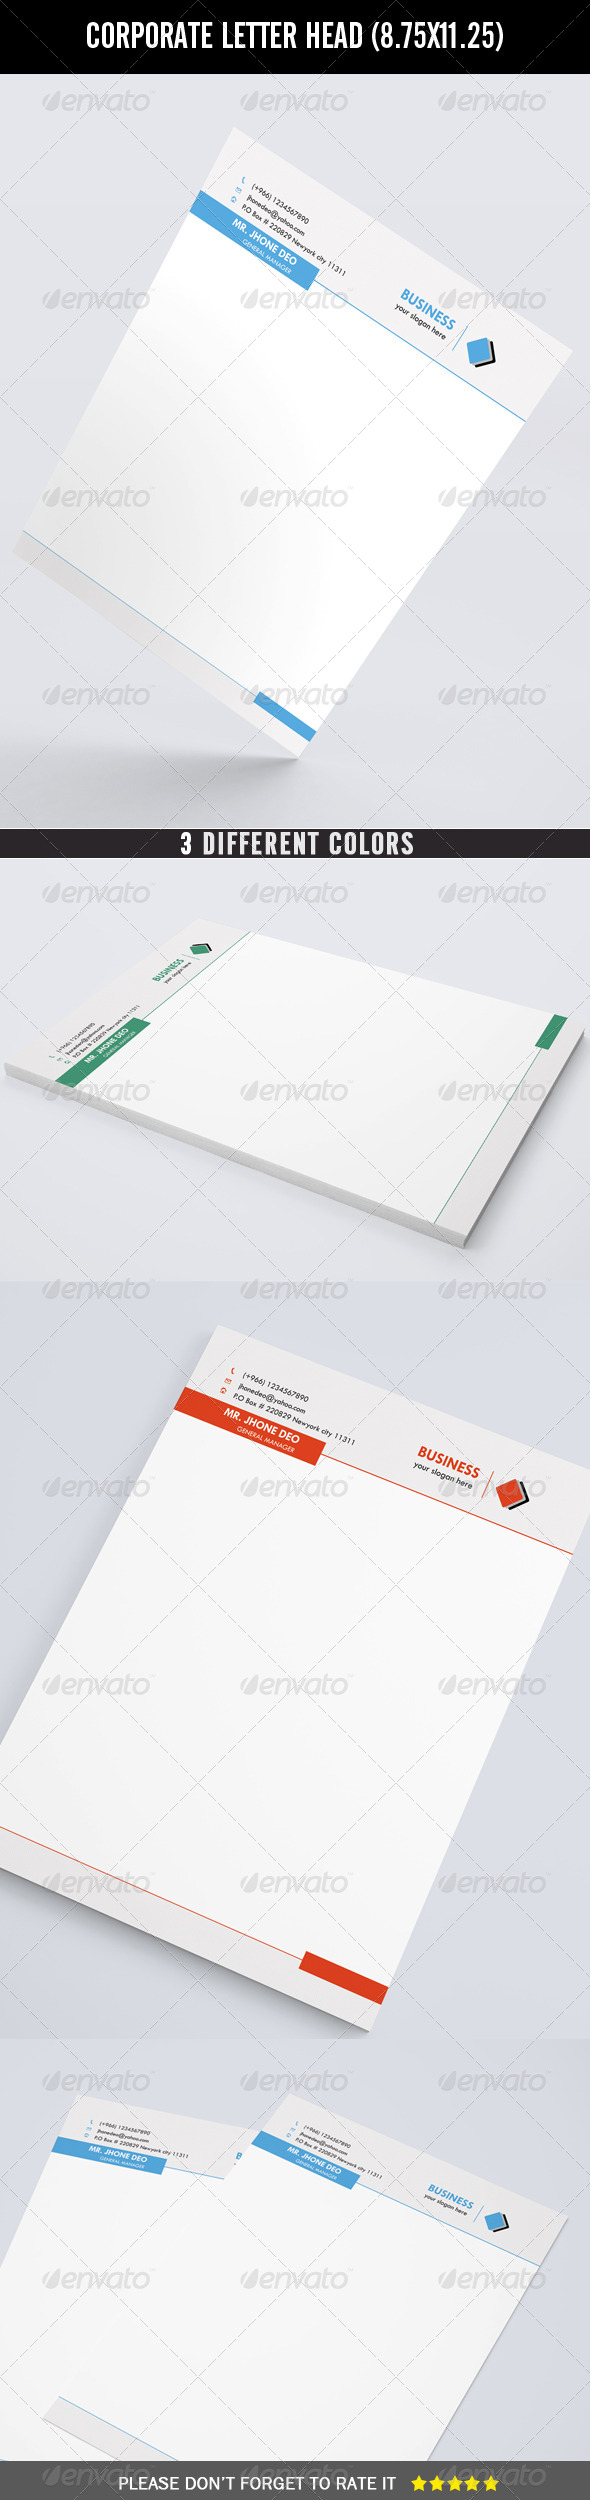 GraphicRiver Corporate Letter Head 7362877